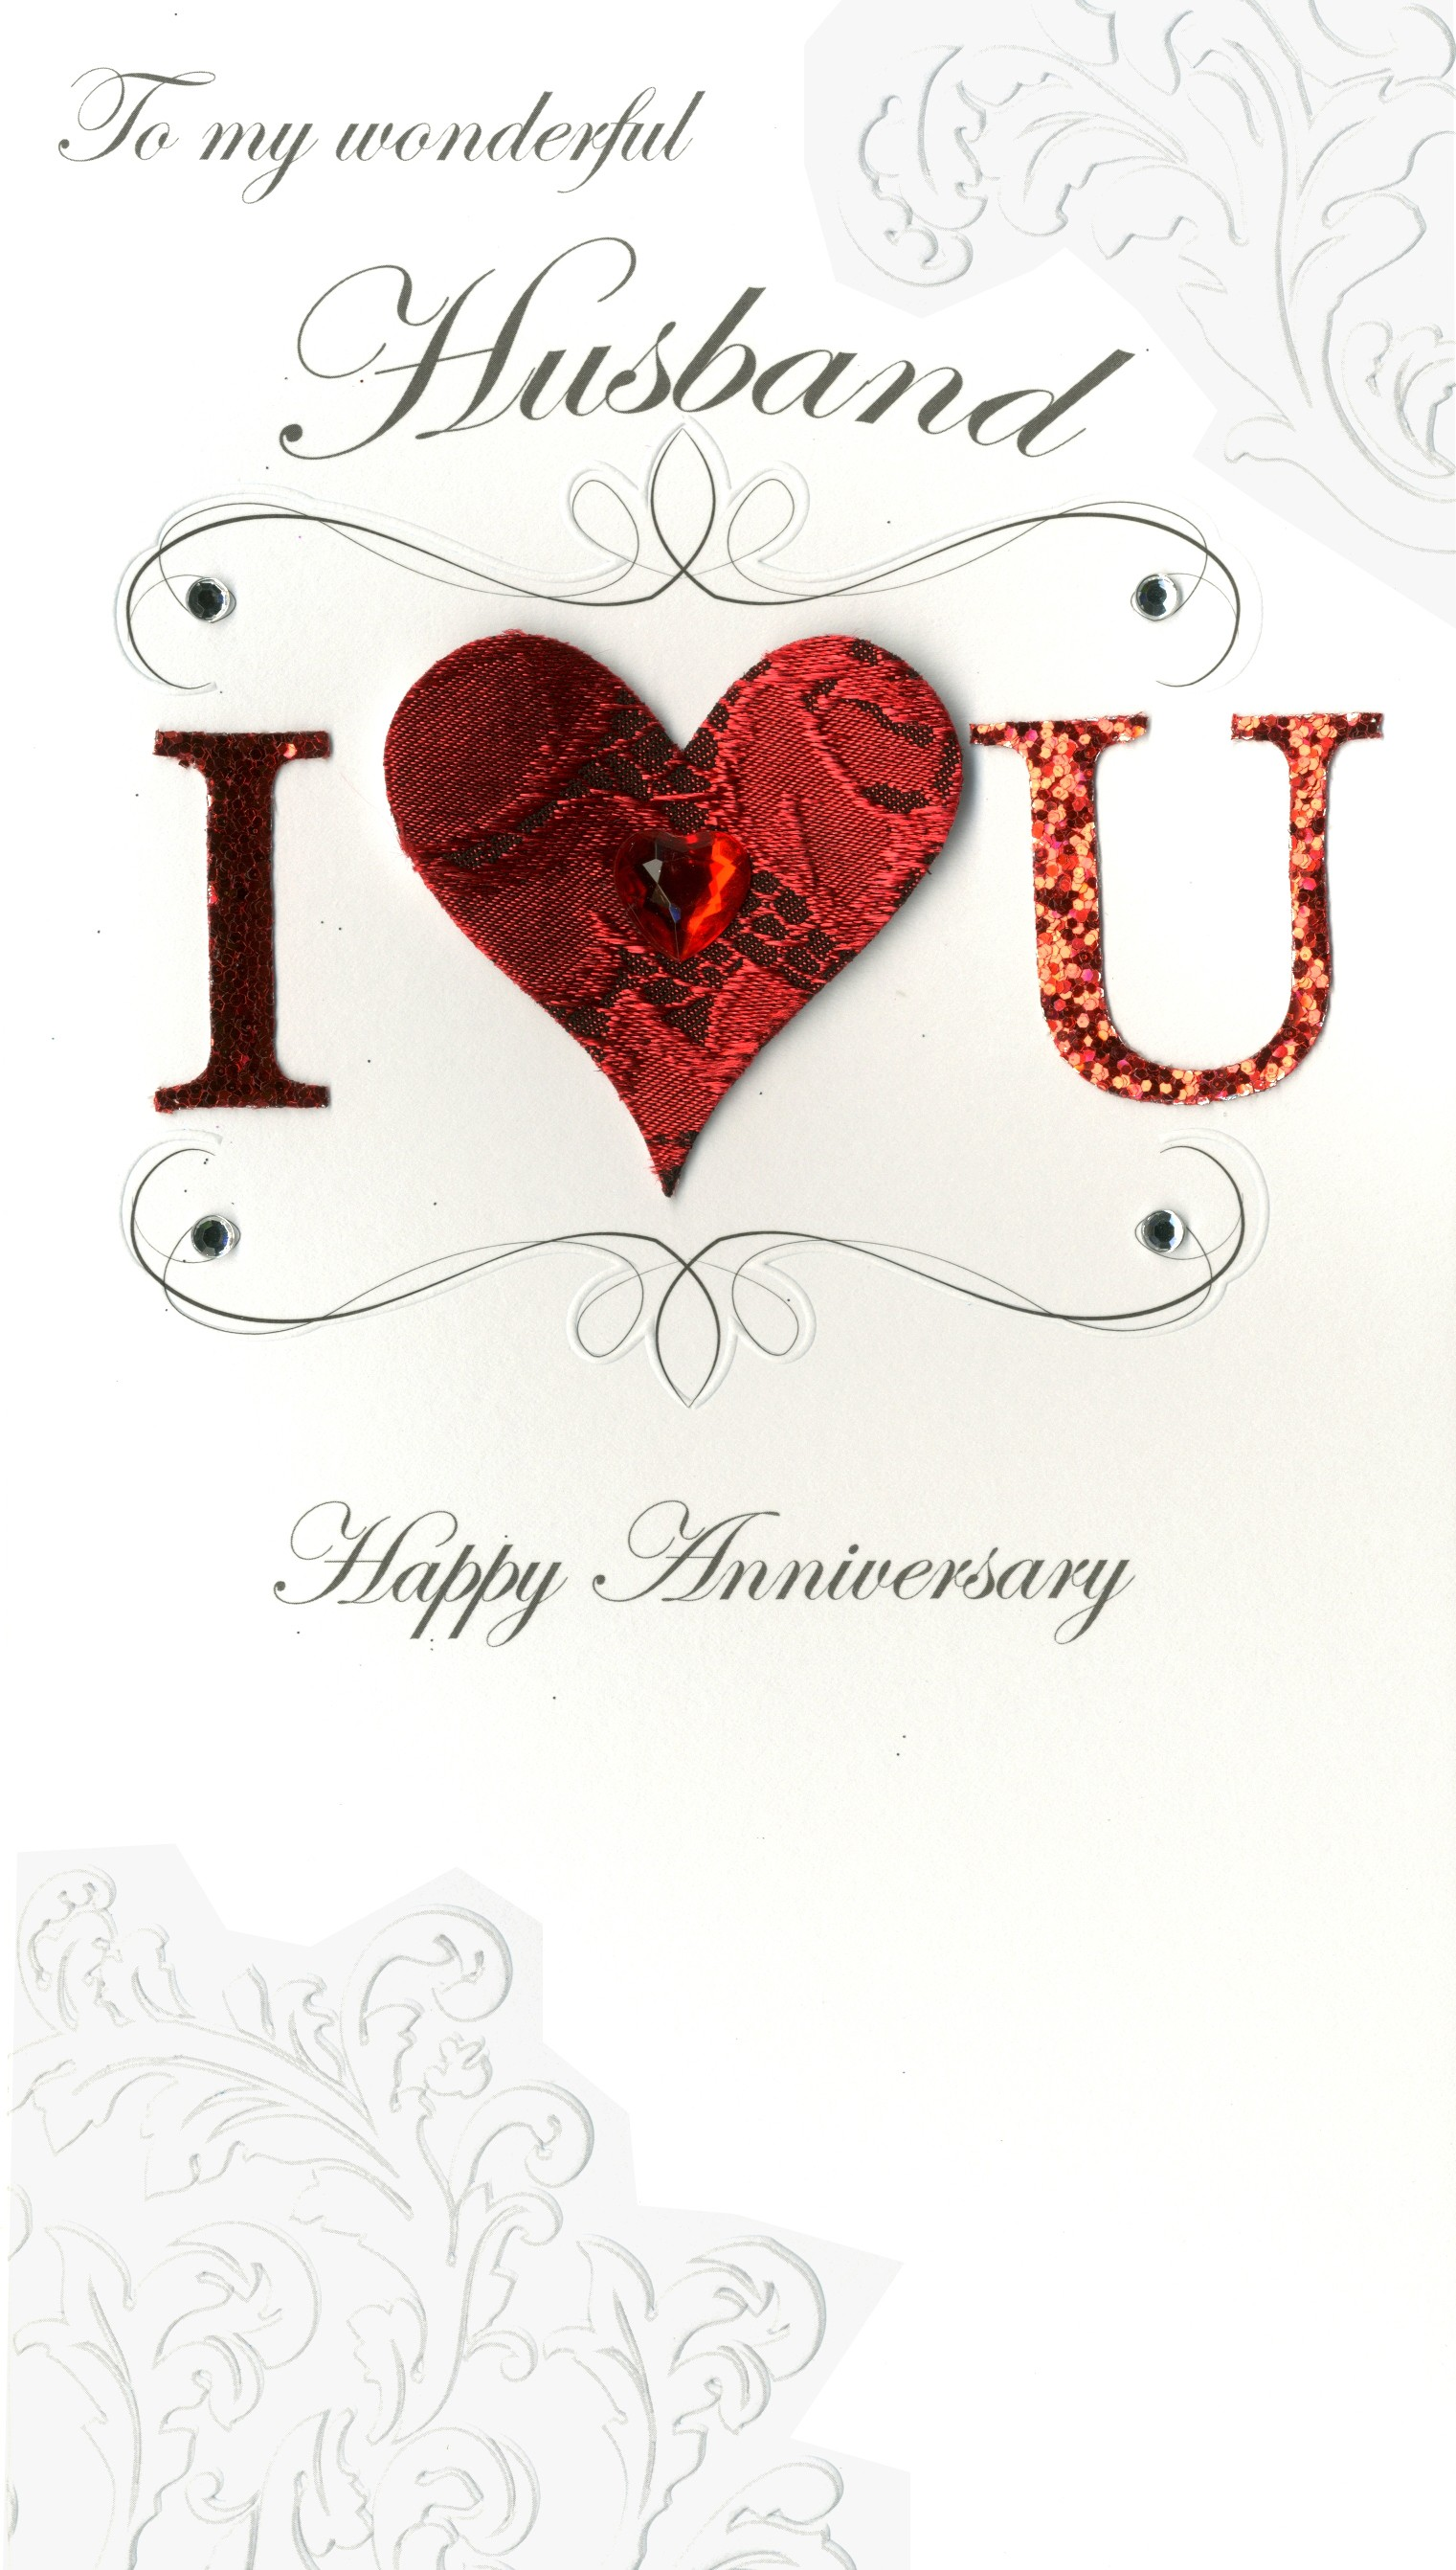 The 321 – Free Printable Anniversary Cards for Husband